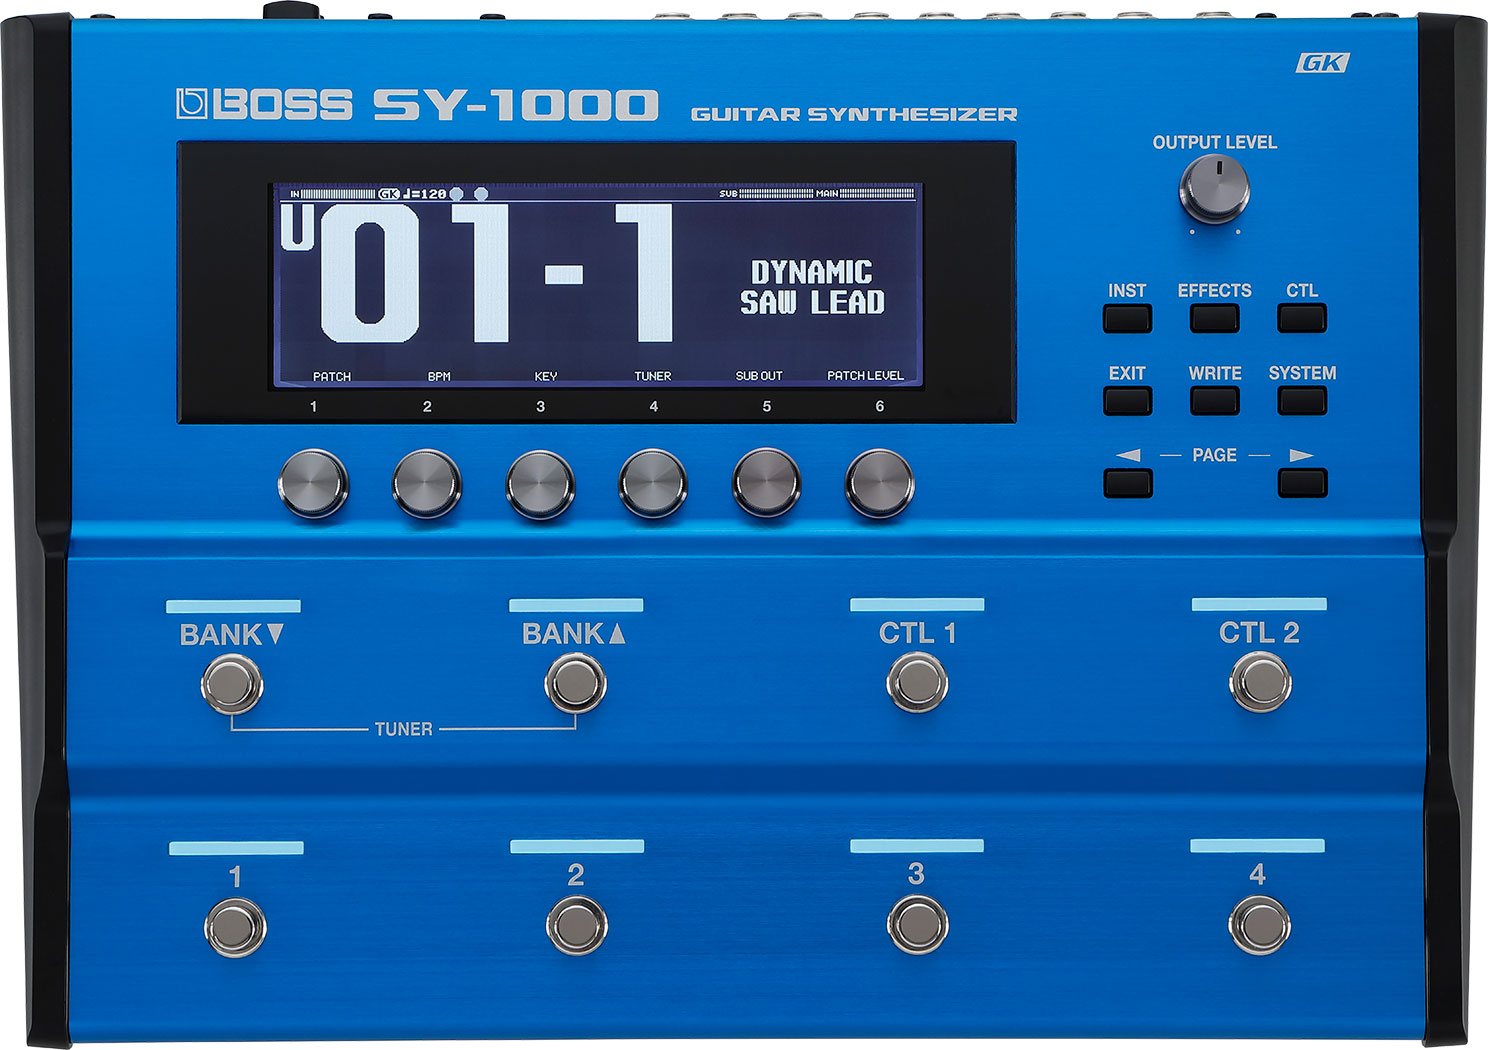 SY-1000 GUITAR SYNTHESIZER